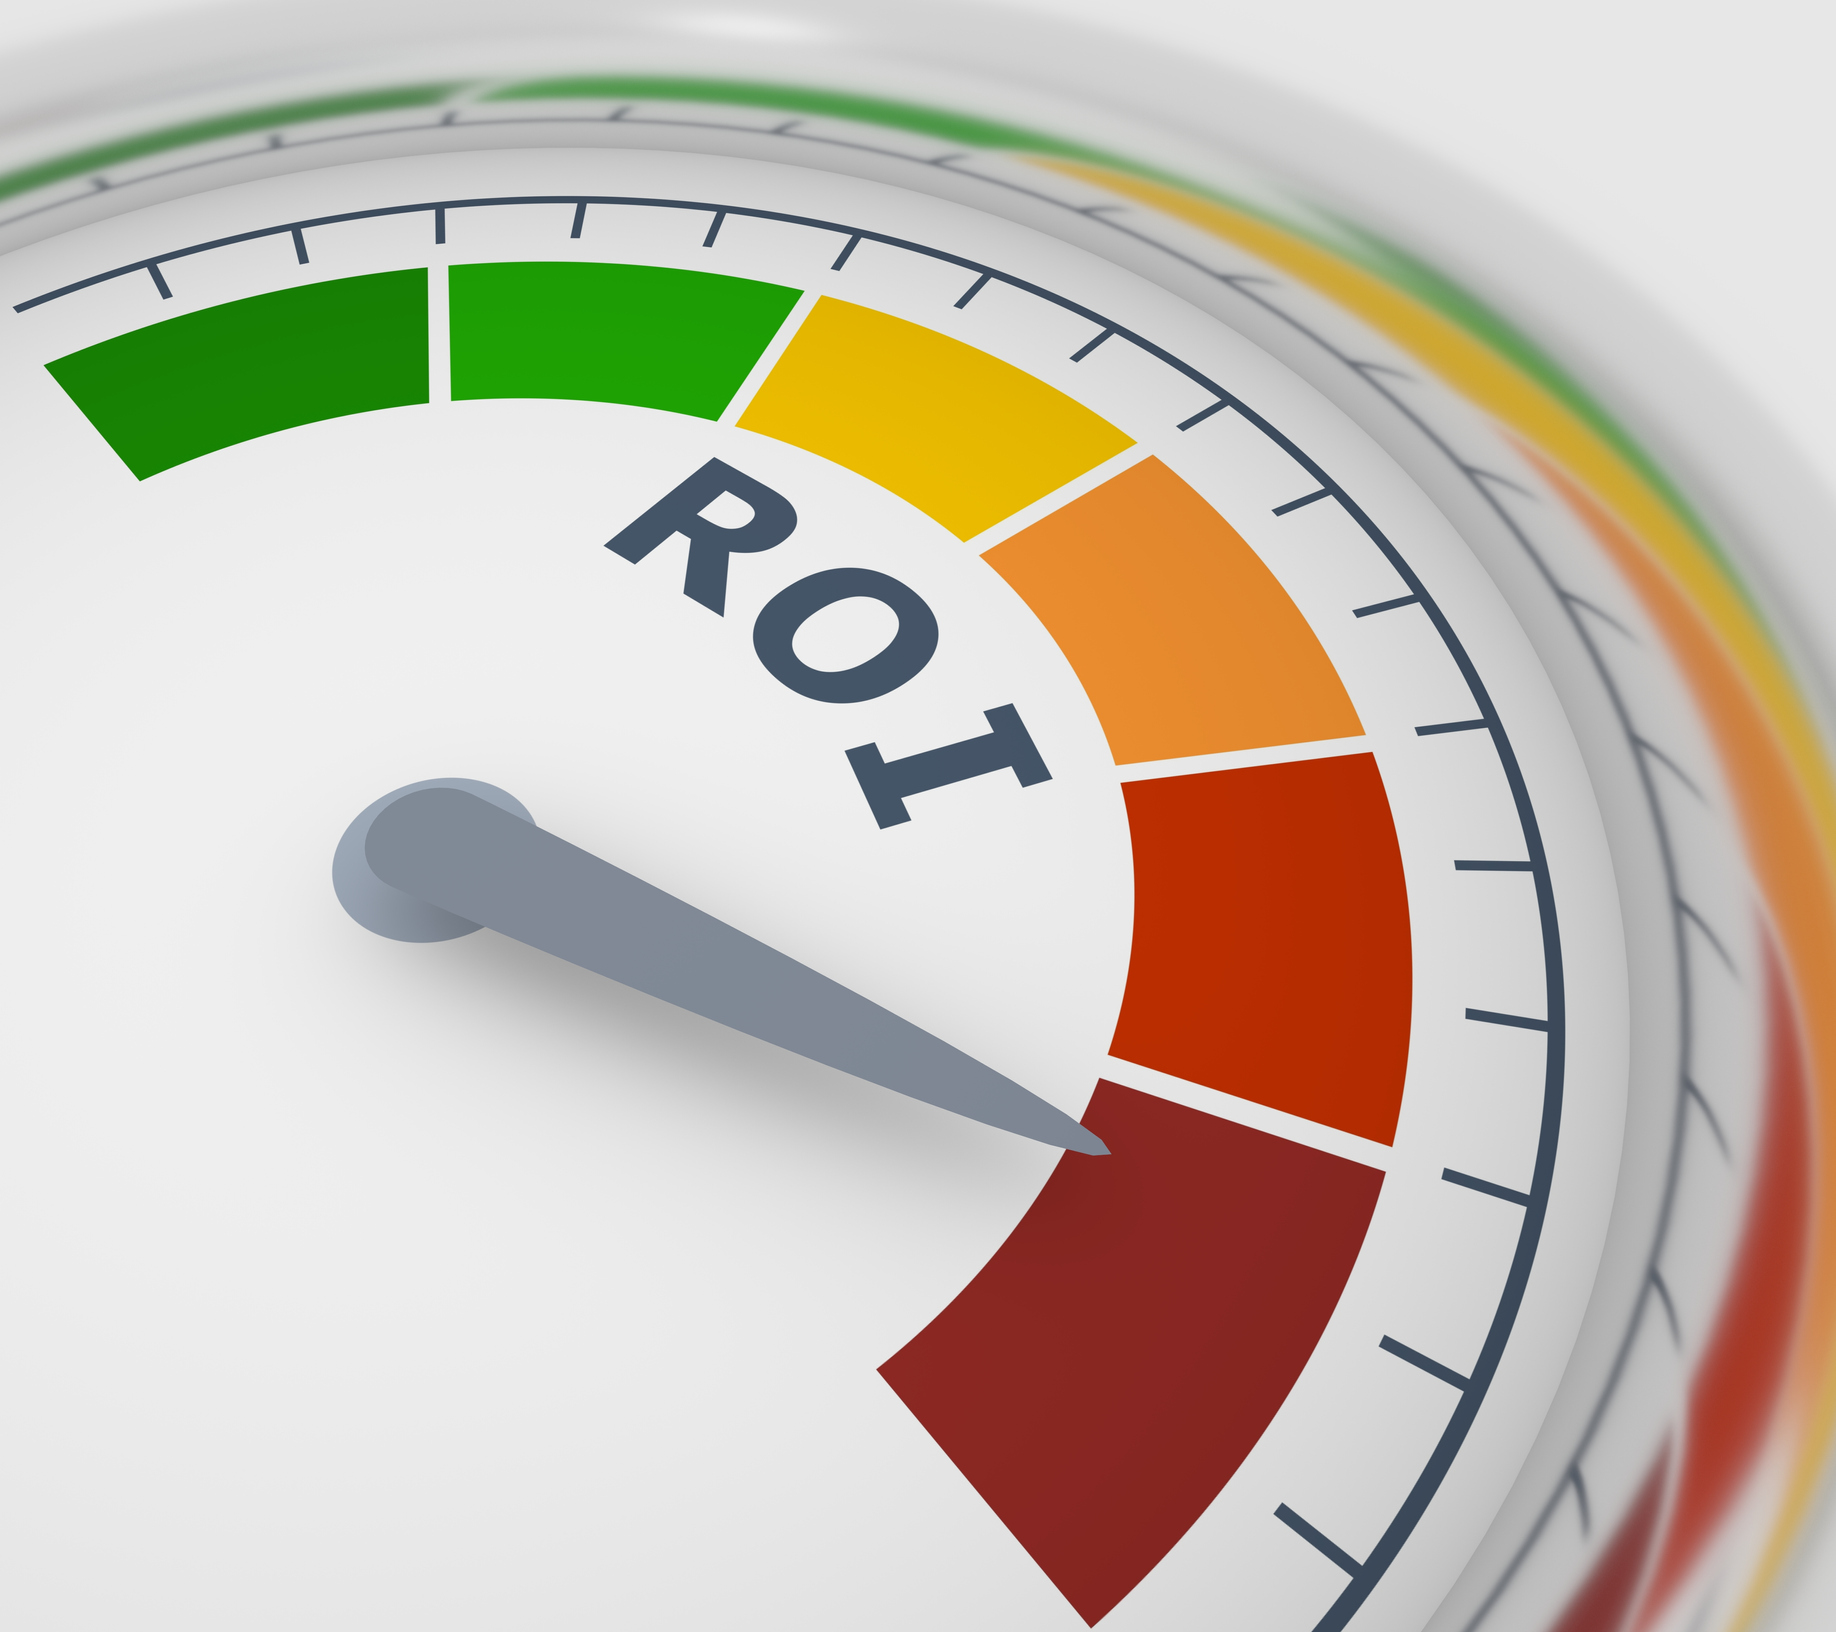 Digital ROI- Understand Digital Metrics and how this leads to Positive ROI